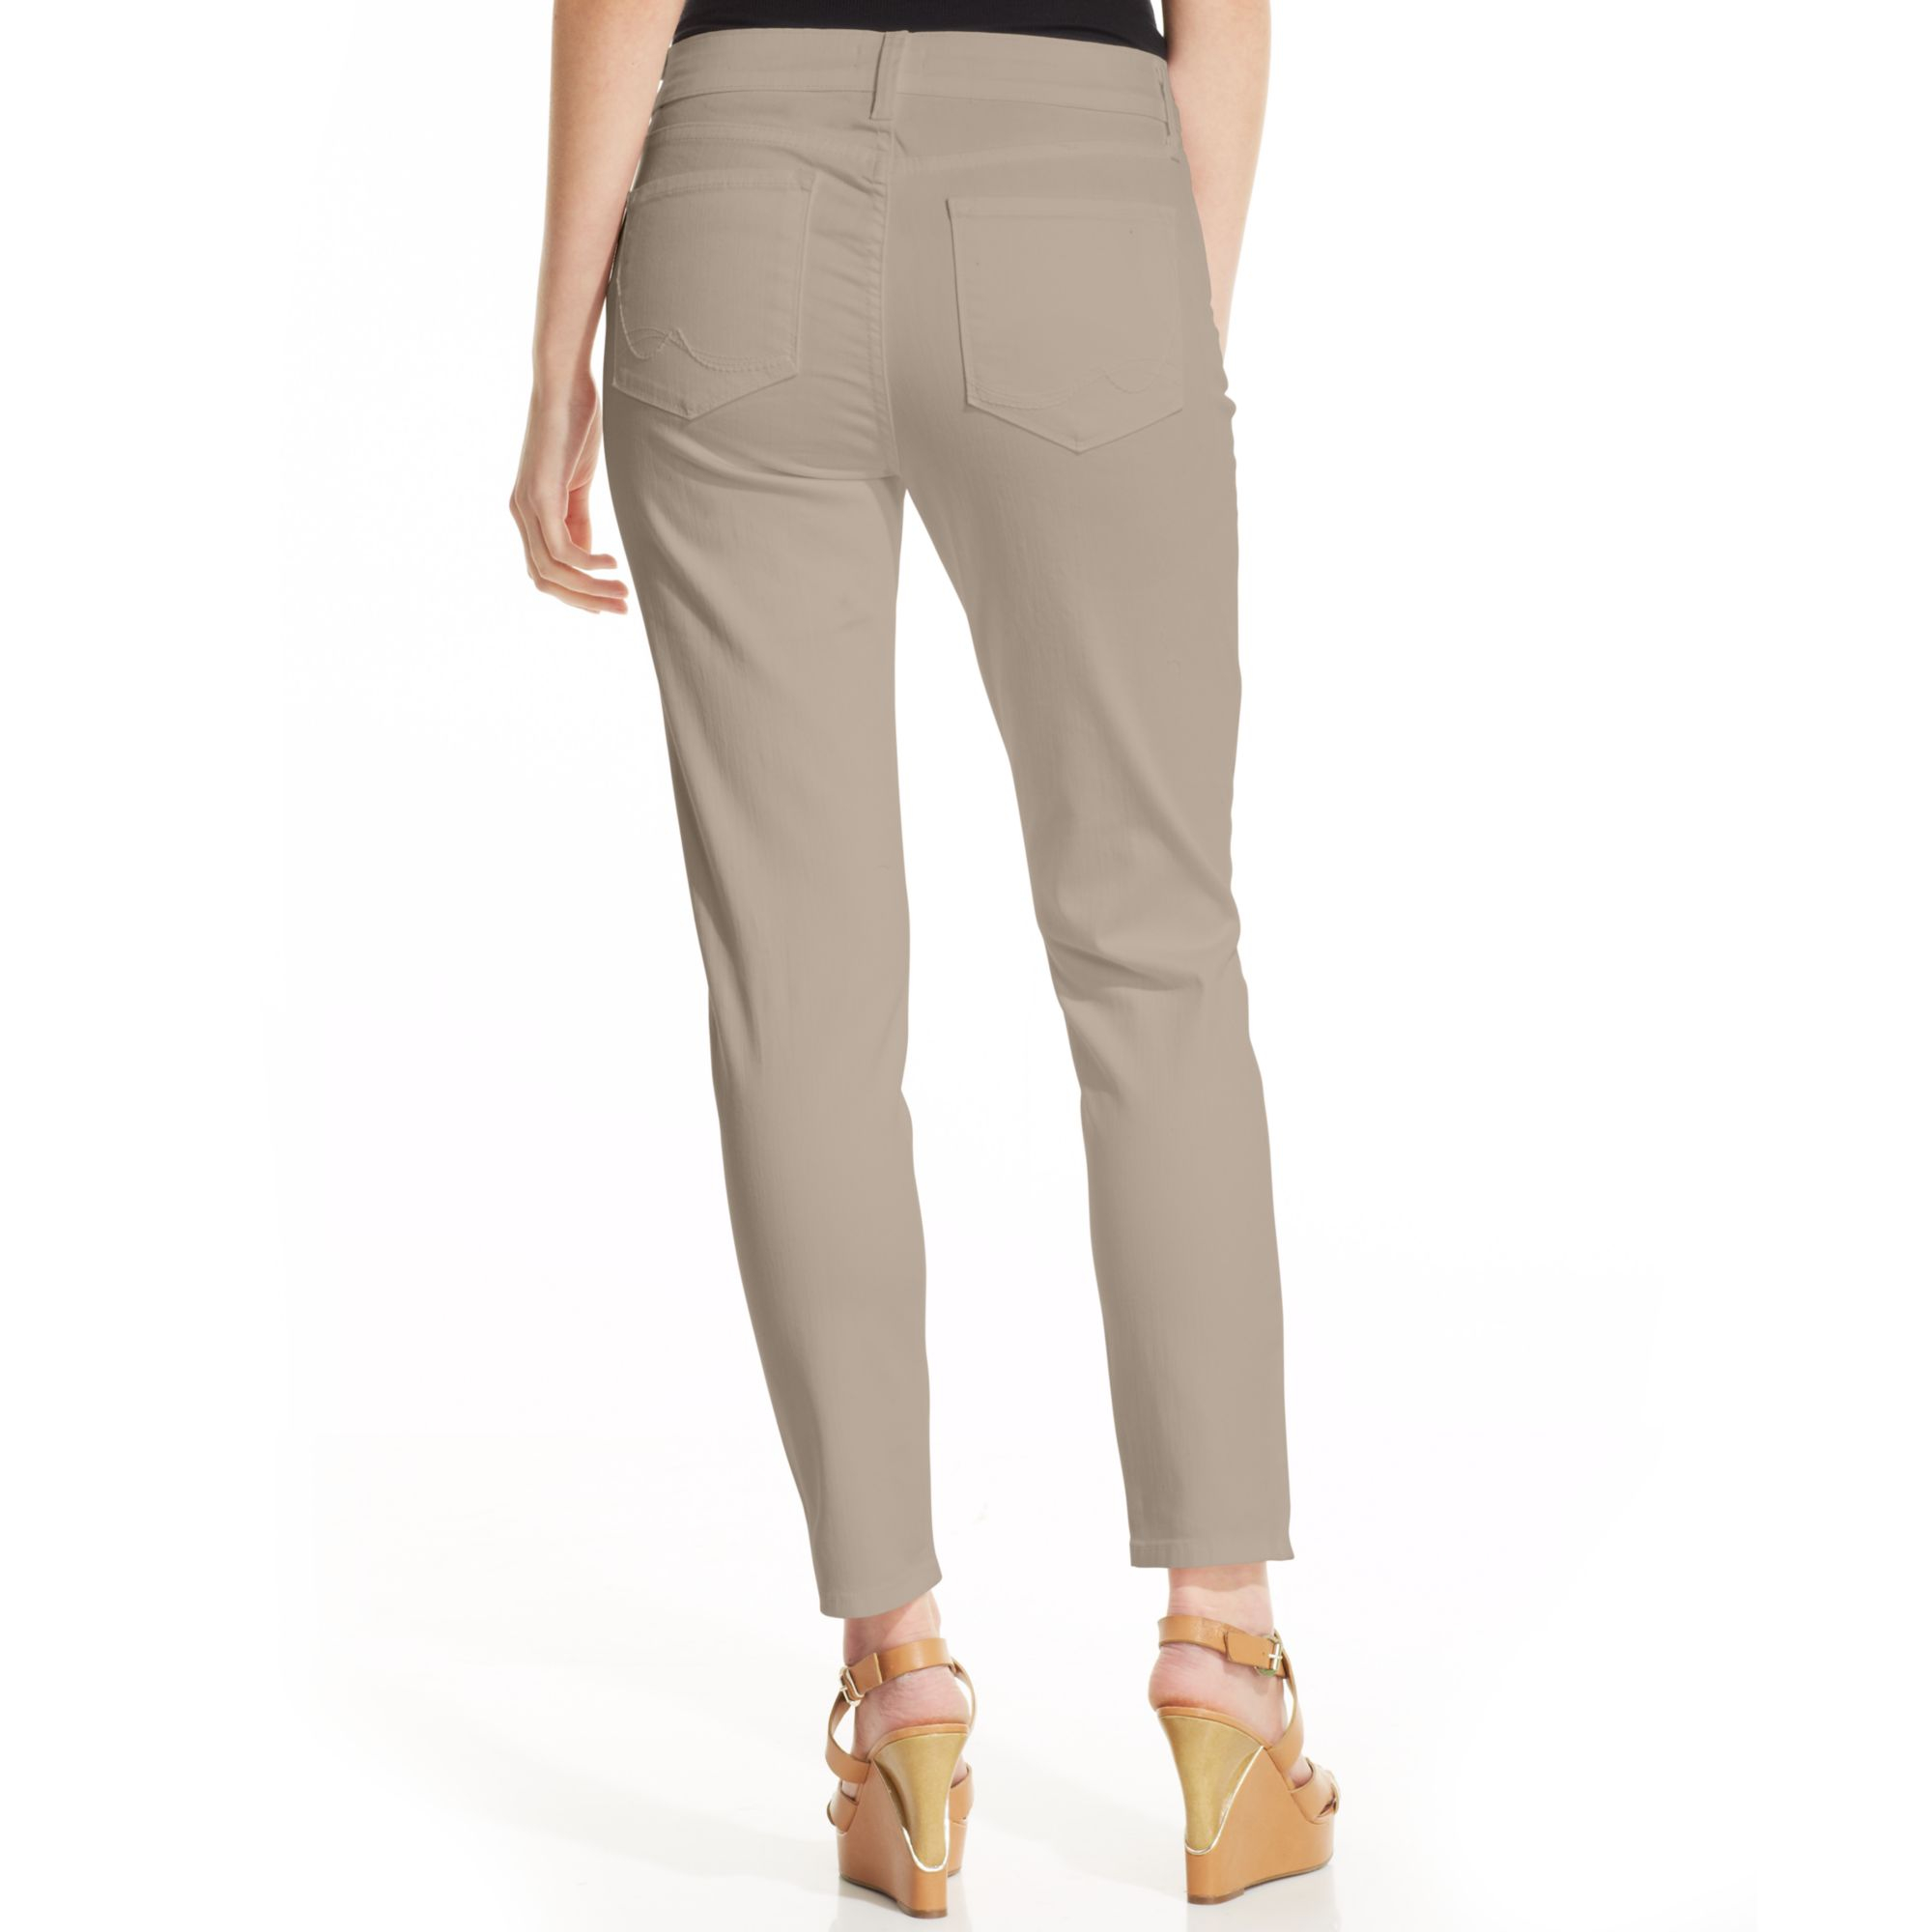 Nydj Petite Clarissa Skinny Colored Jeans in Natural | Lyst